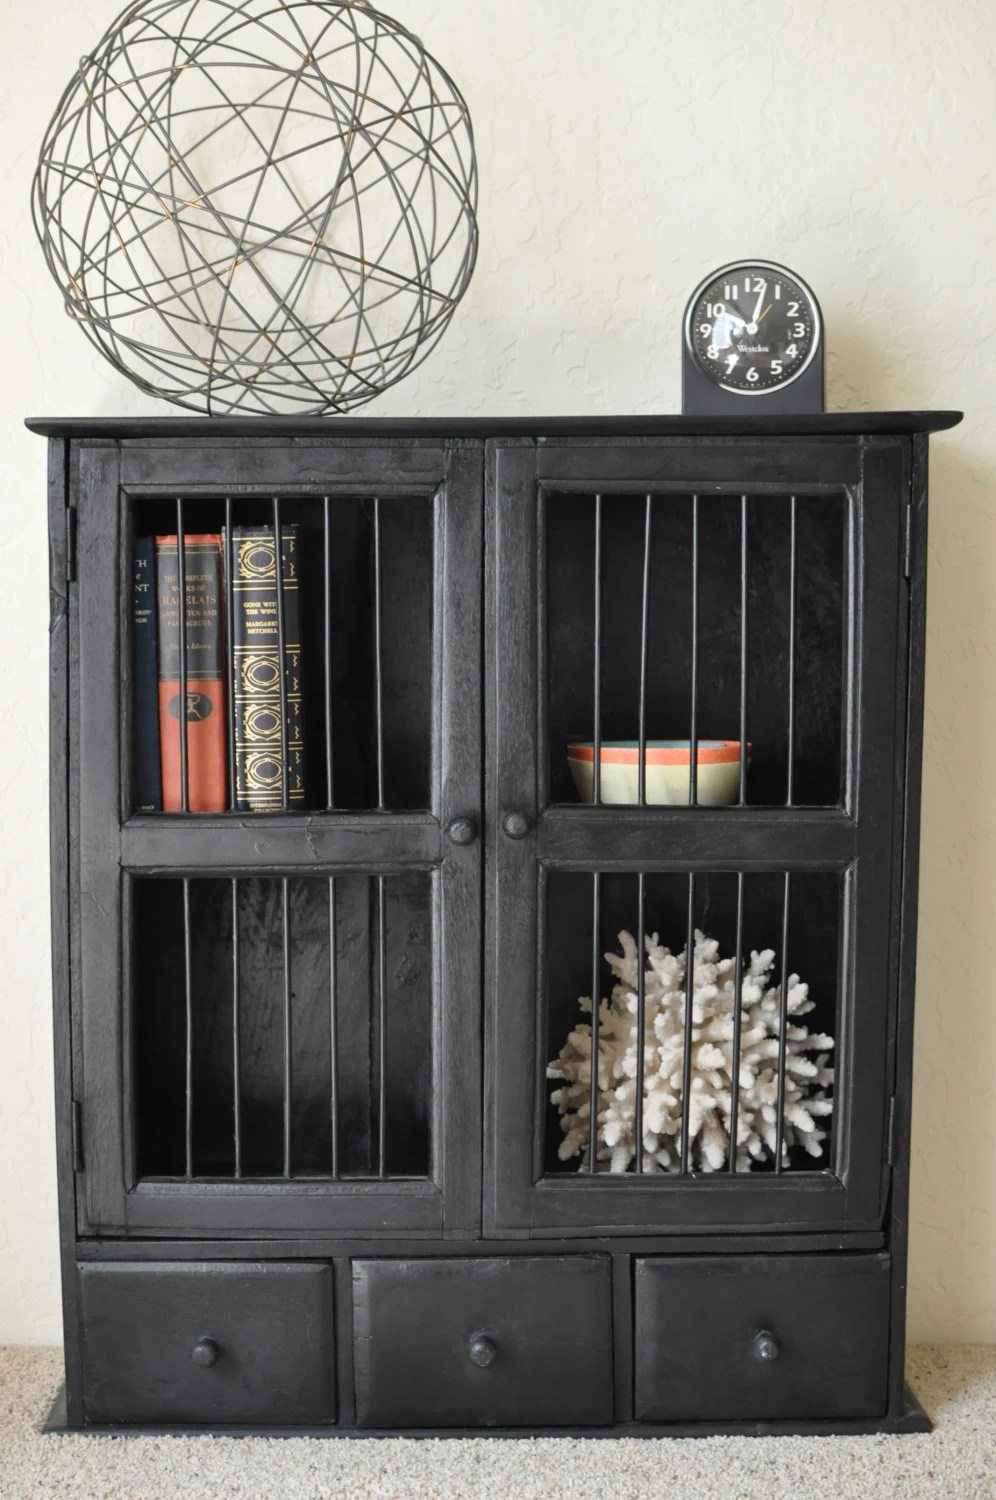 Vintage Rustic Wood Display CabinetWood Wall ShelfShabby